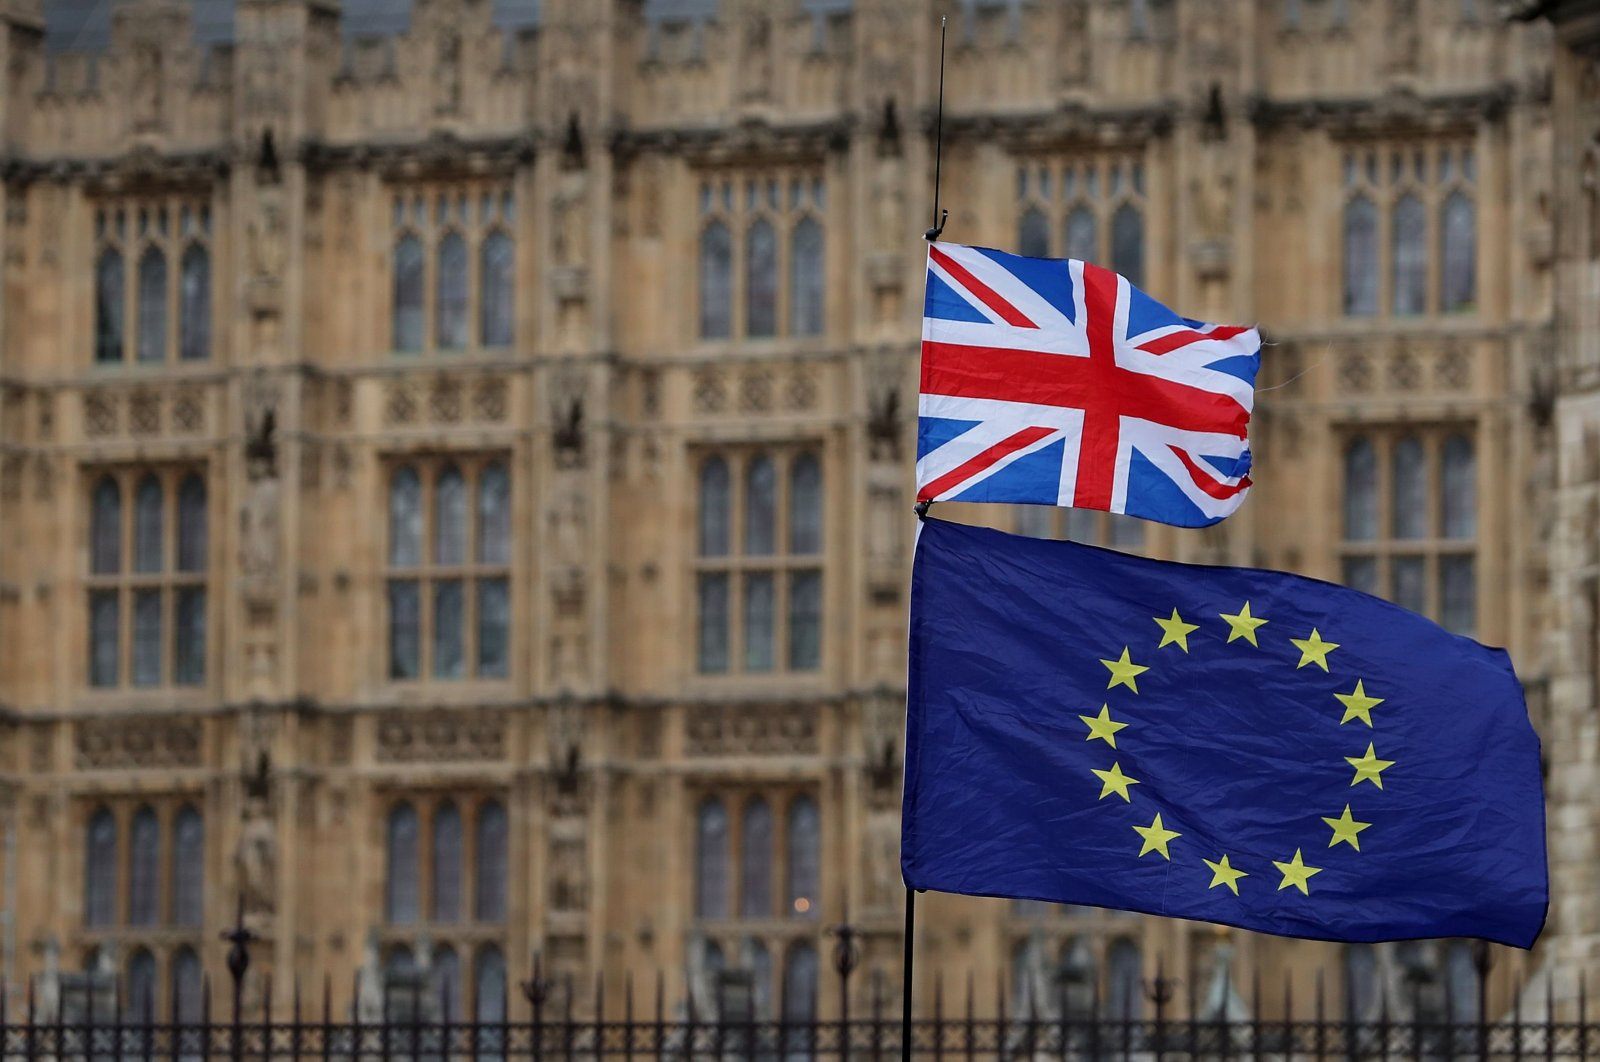 An anti-Brexit activist waves the U.K. and the European Union flag in a demonstration outside the Houses of Parliament in central London, England, Jan. 23, 2019. (AFP Photo)